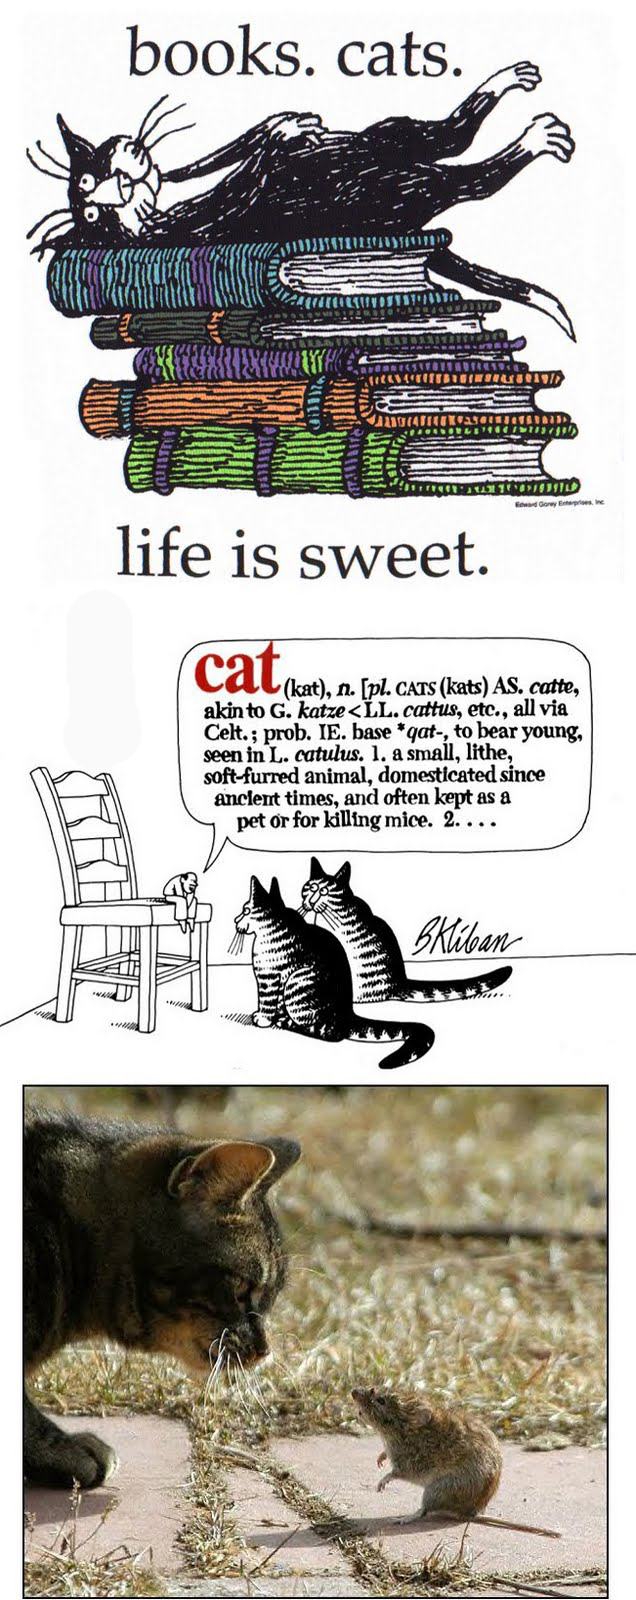 I adore cats but I'm allergic. Well, you can't have everything..